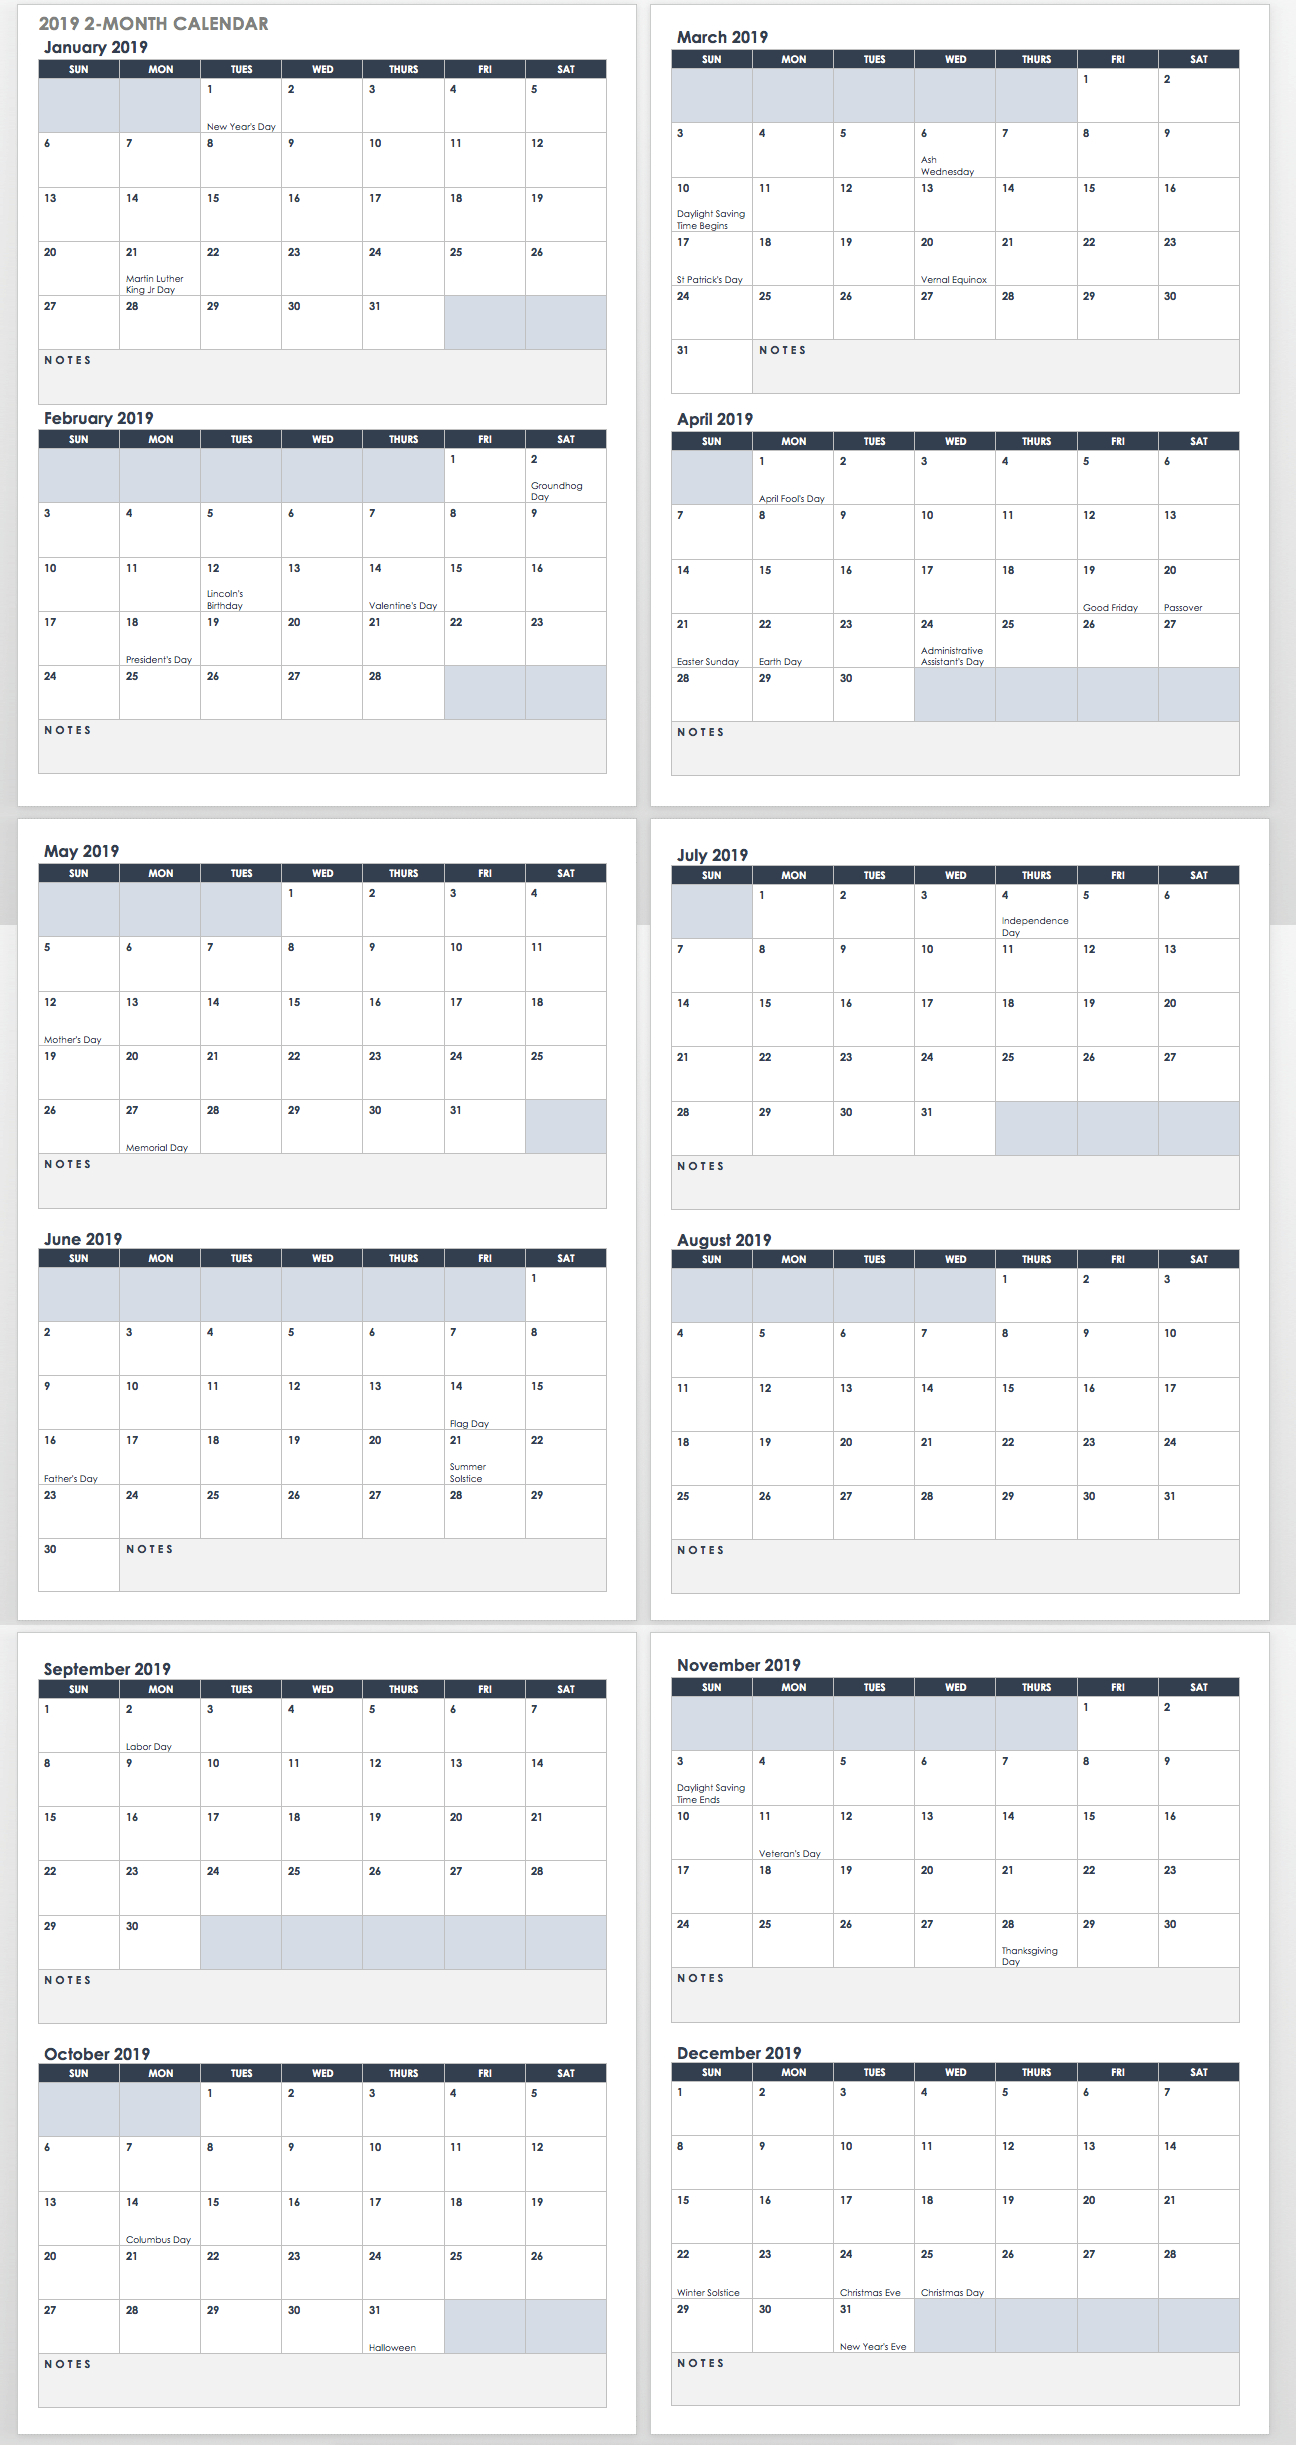 15 Free Monthly Calendar Templates | Smartsheet for 2019/2020 Academic 2 Column Calendar 2019/2020